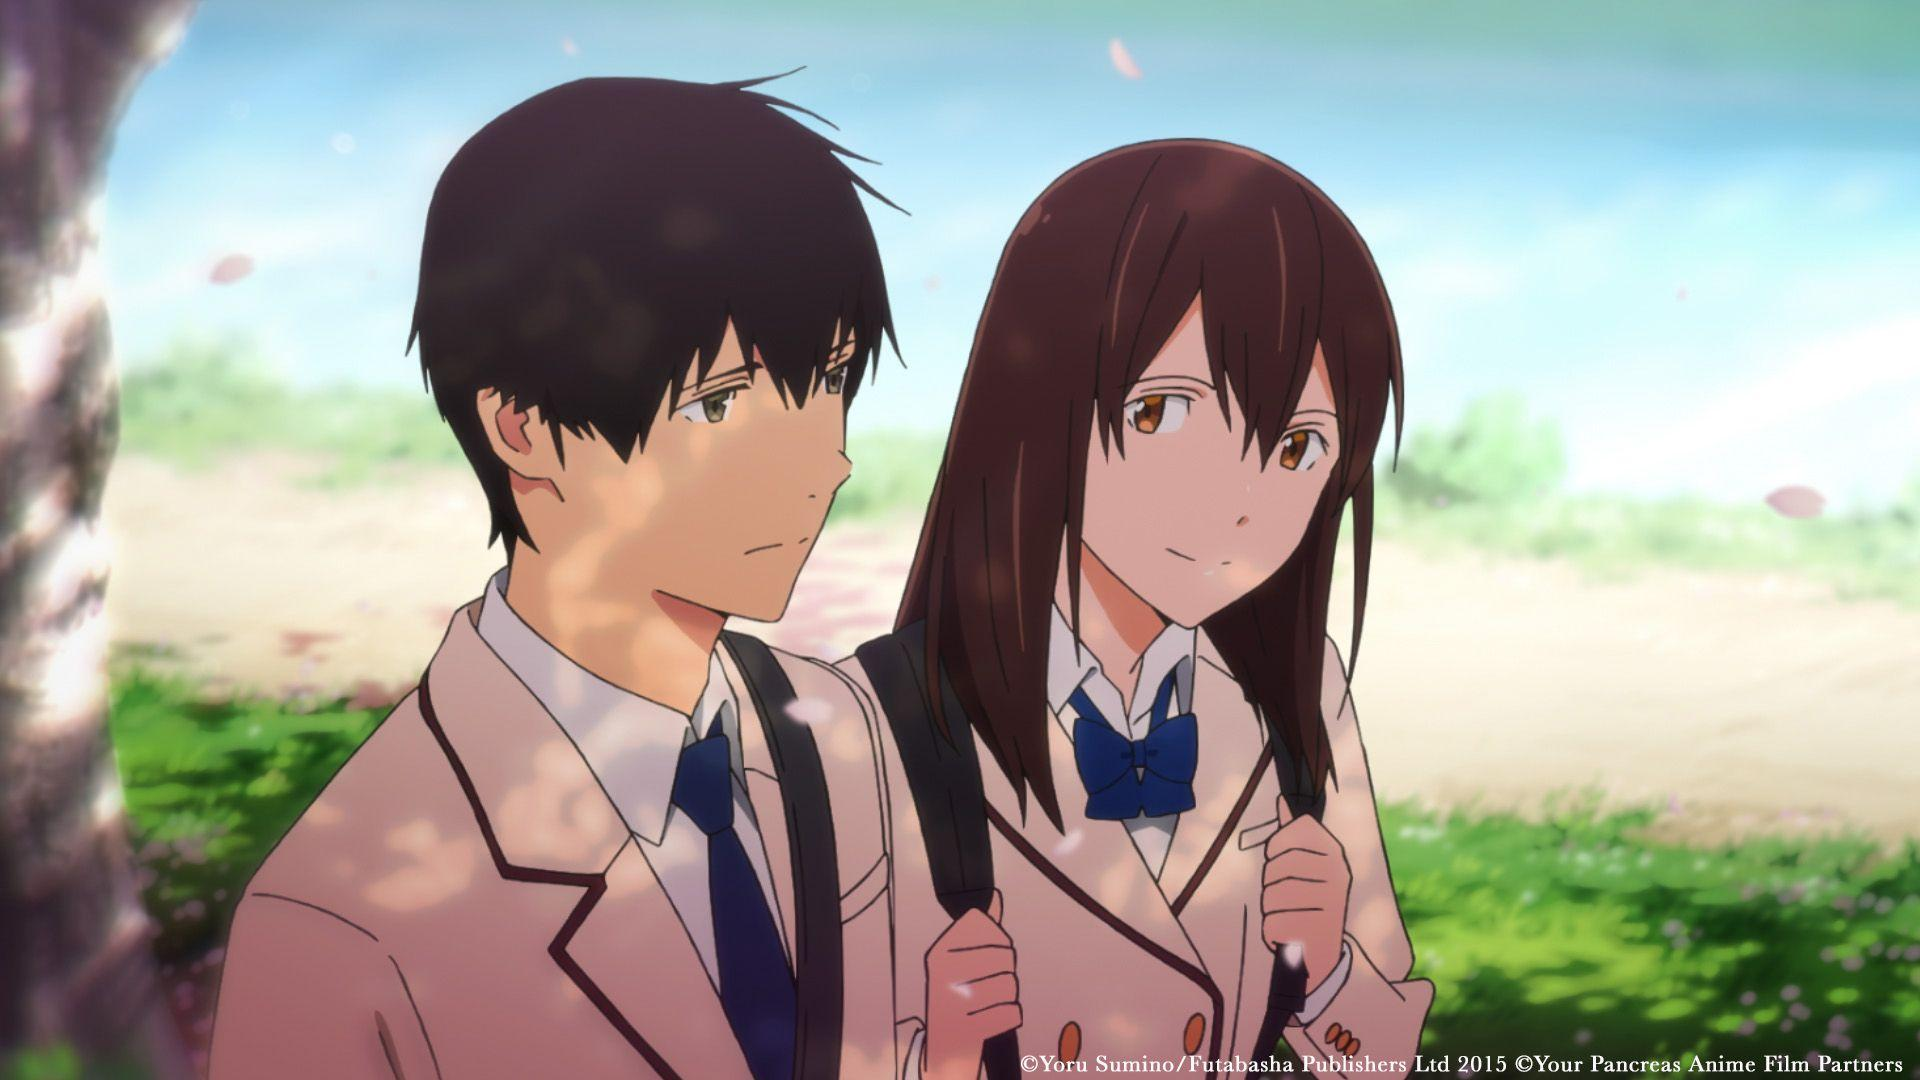 Should fans be excited for the anime I Want To Eat Your Pancreas